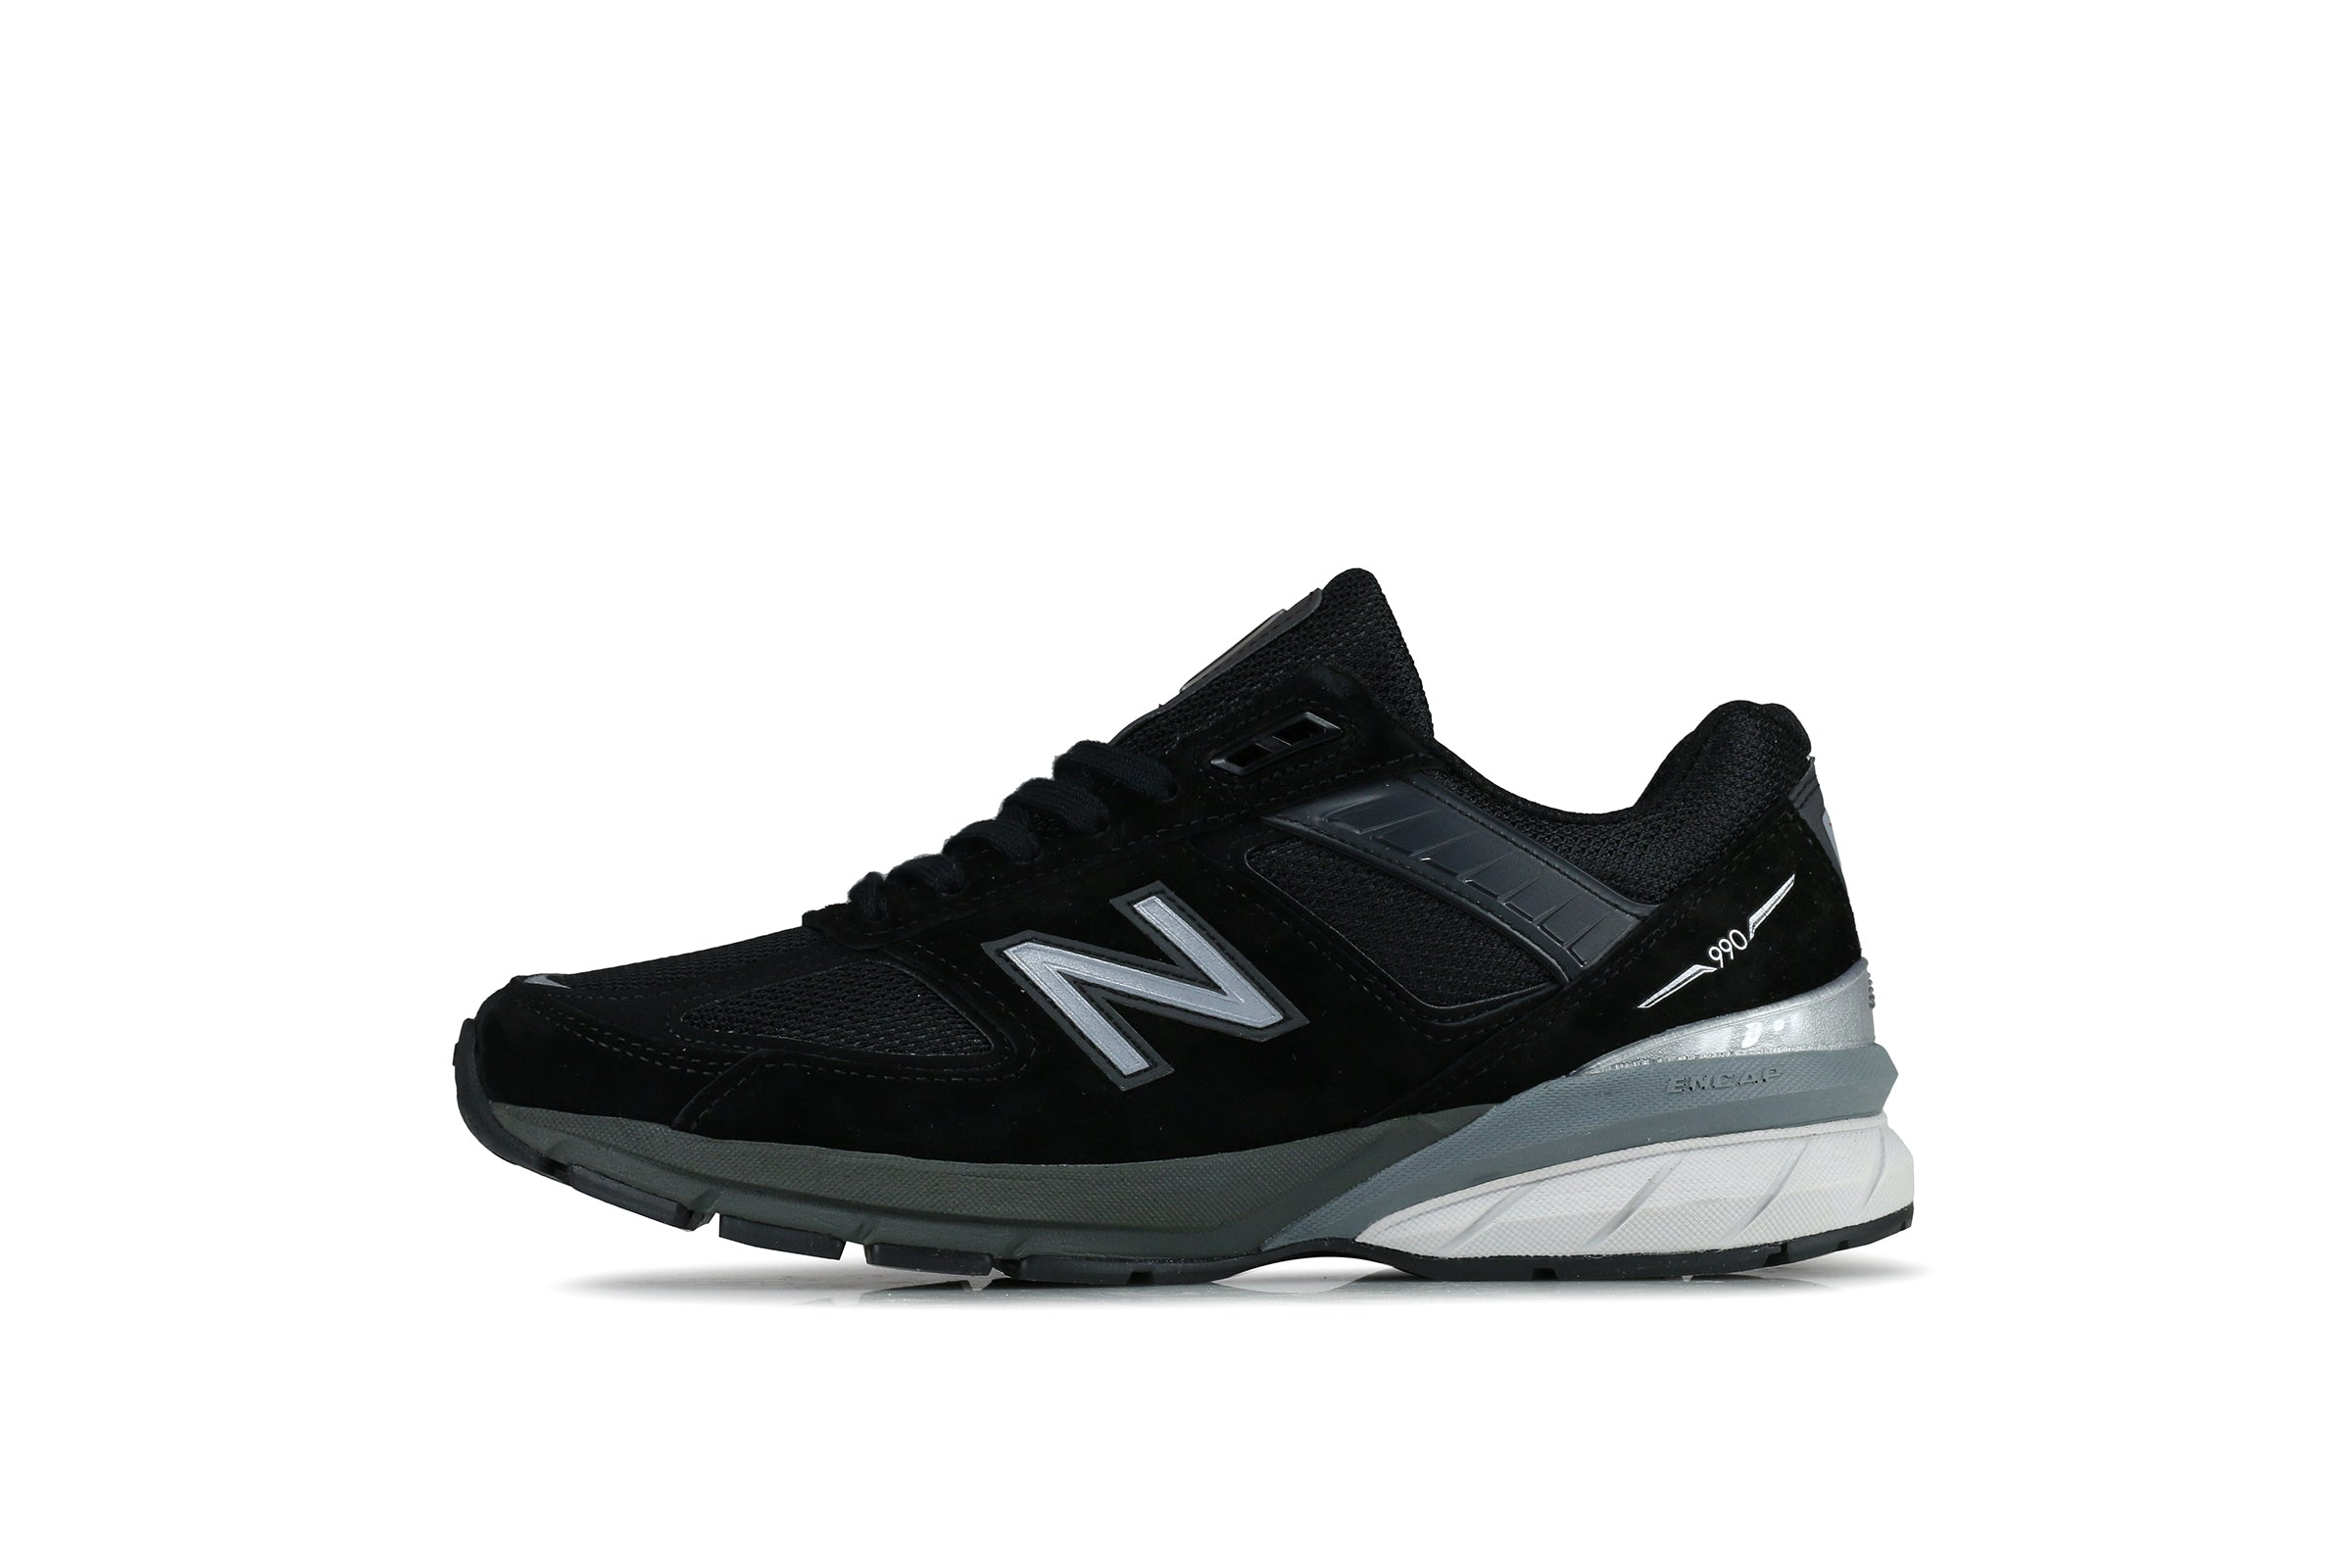 f6e4f38320d53 New Balance Sneakers | New Balance Apparel & Trainers | Hanon